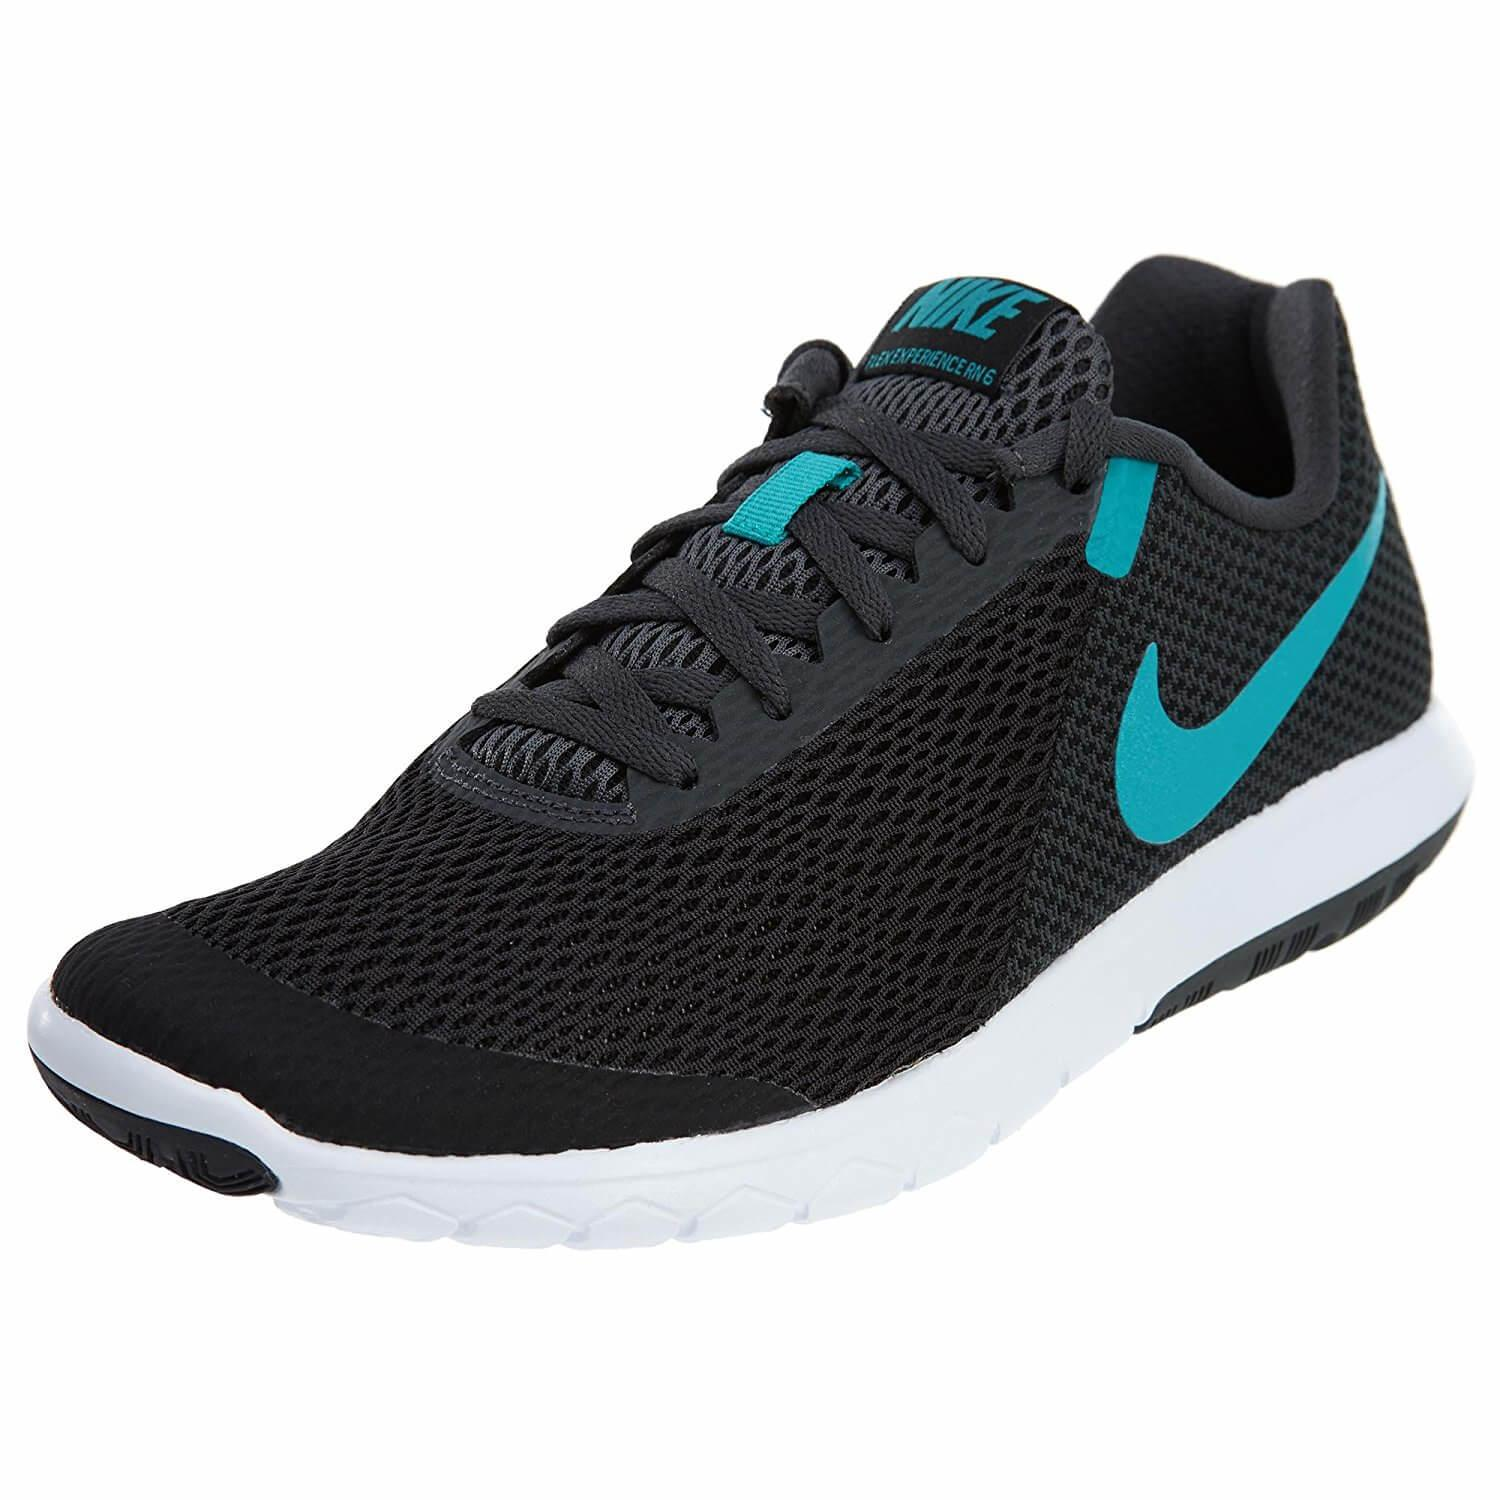 Nike Flex Experience RN 6 - To Buy or Not in Apr 2019  72543ae5a